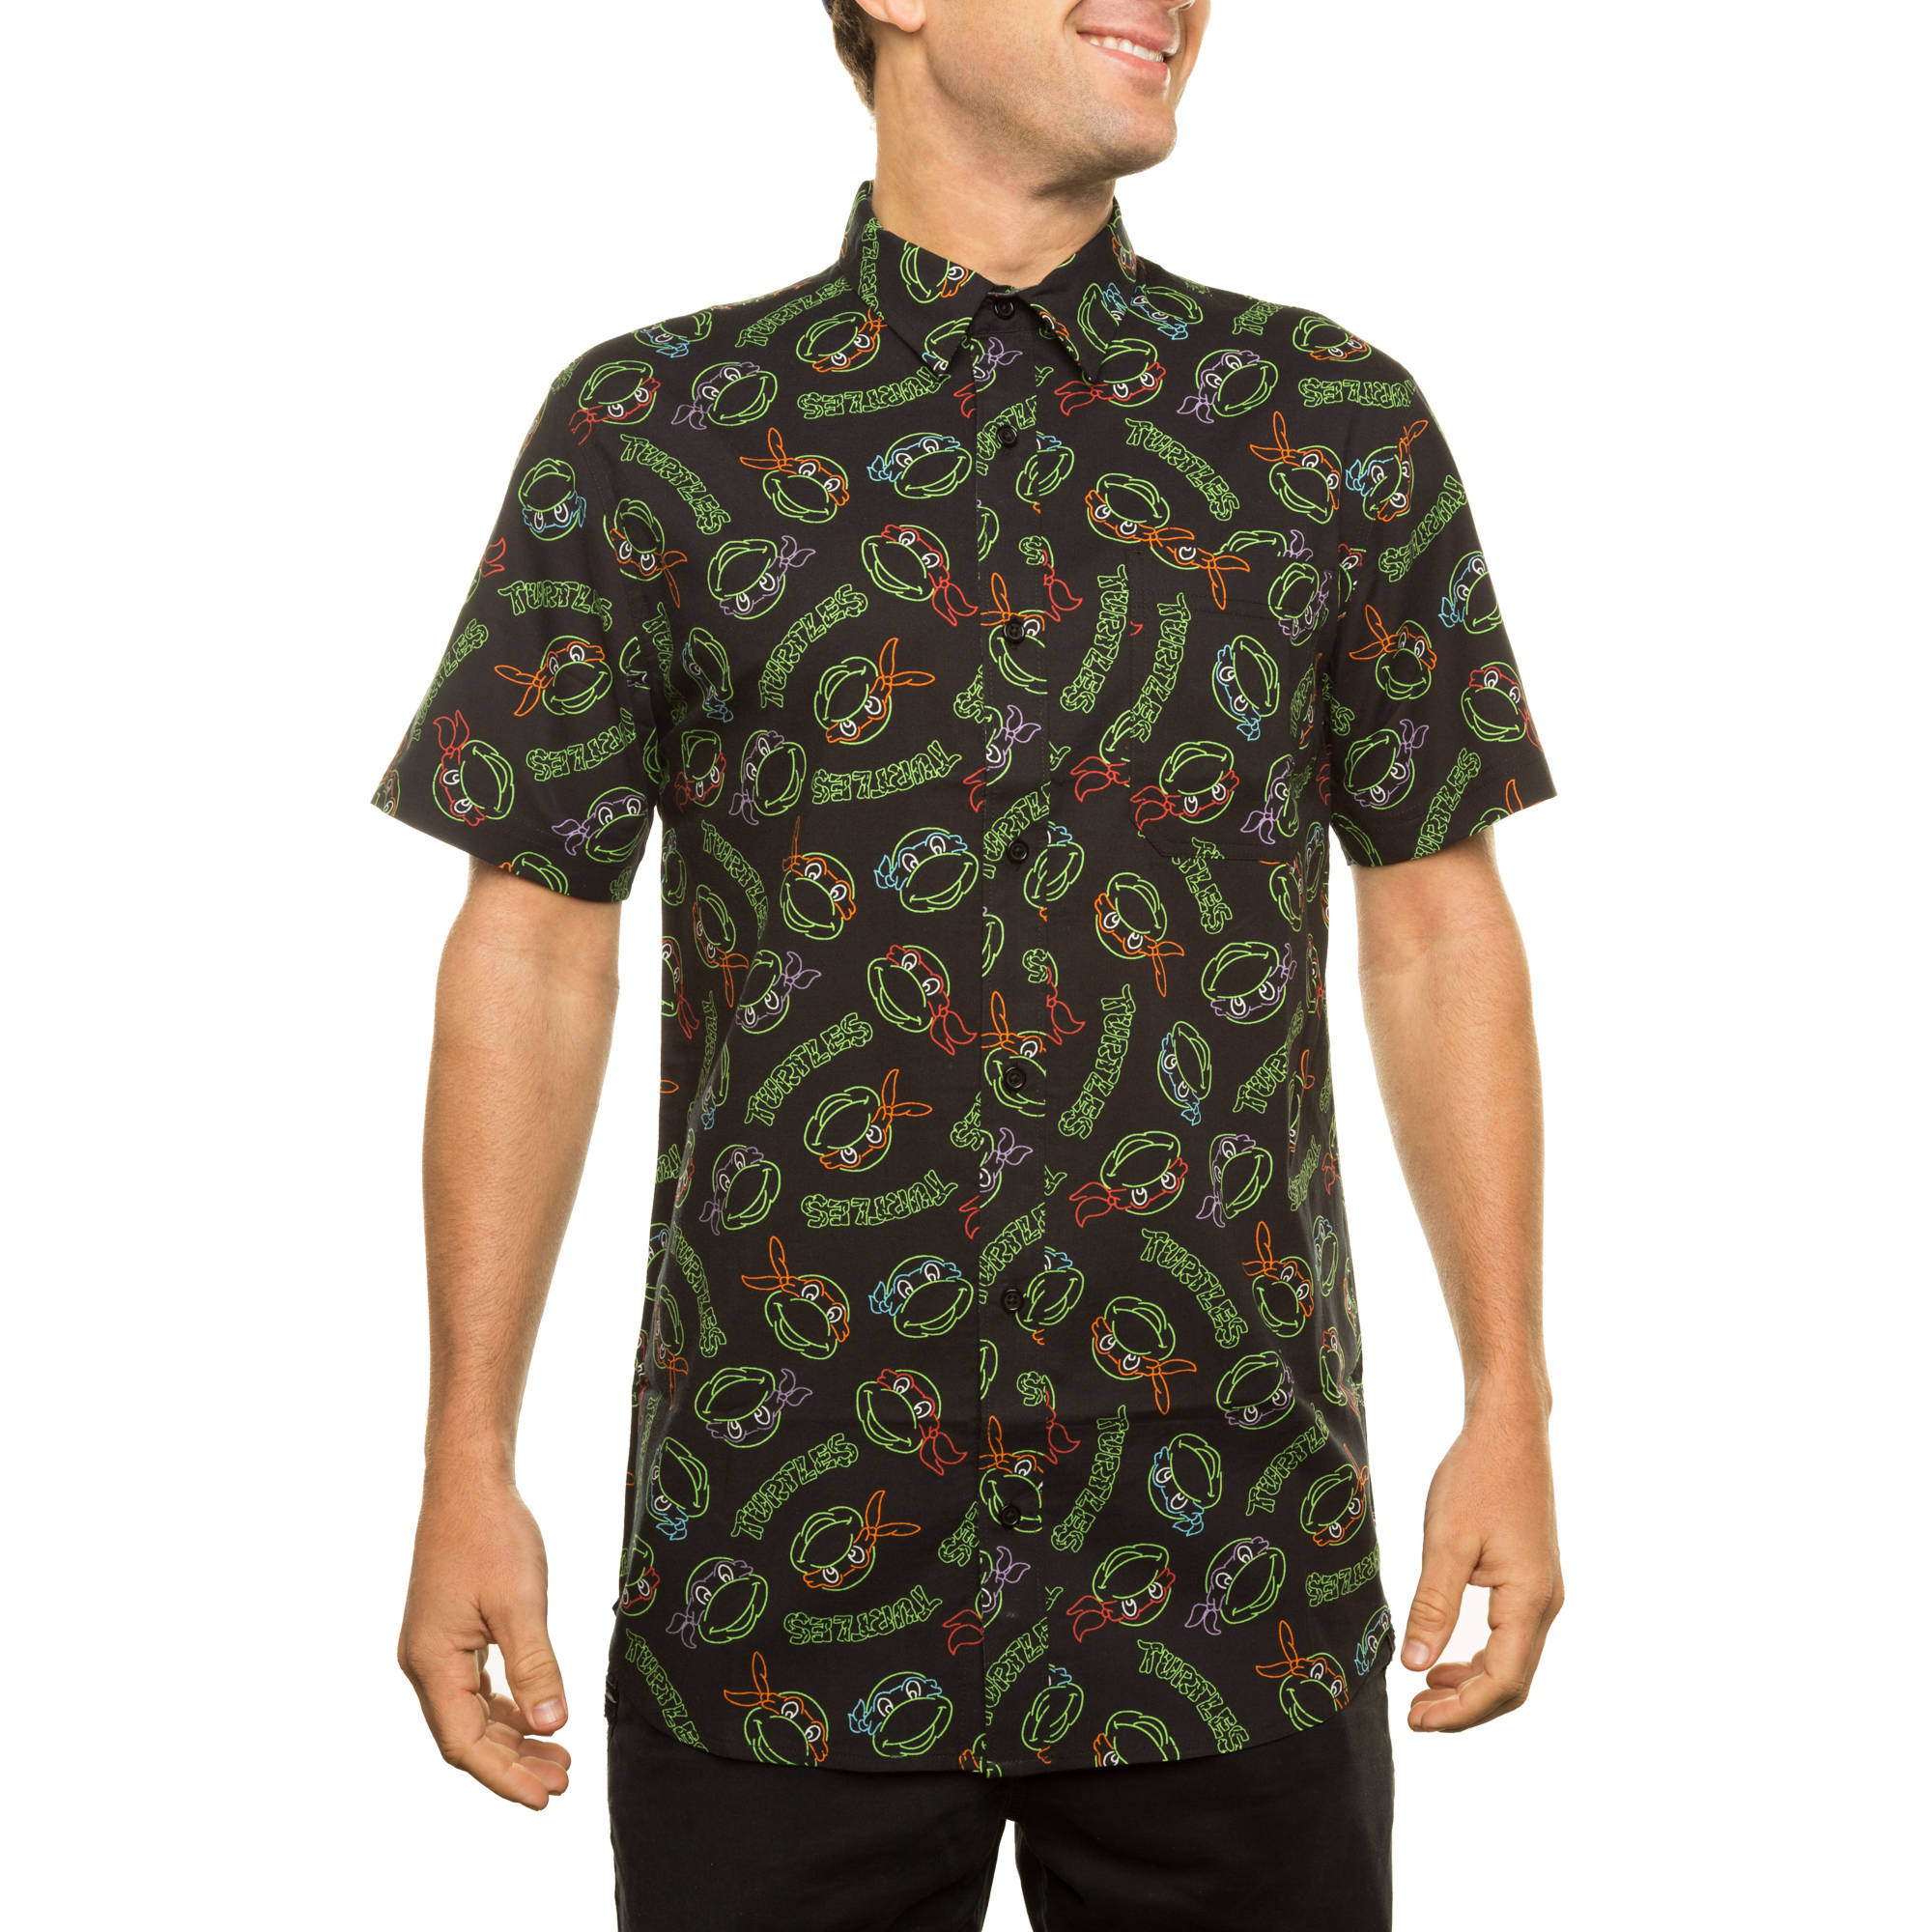 Teenage Mutant Ninja Turtles All Over Printed Men's SS Woven Shirt